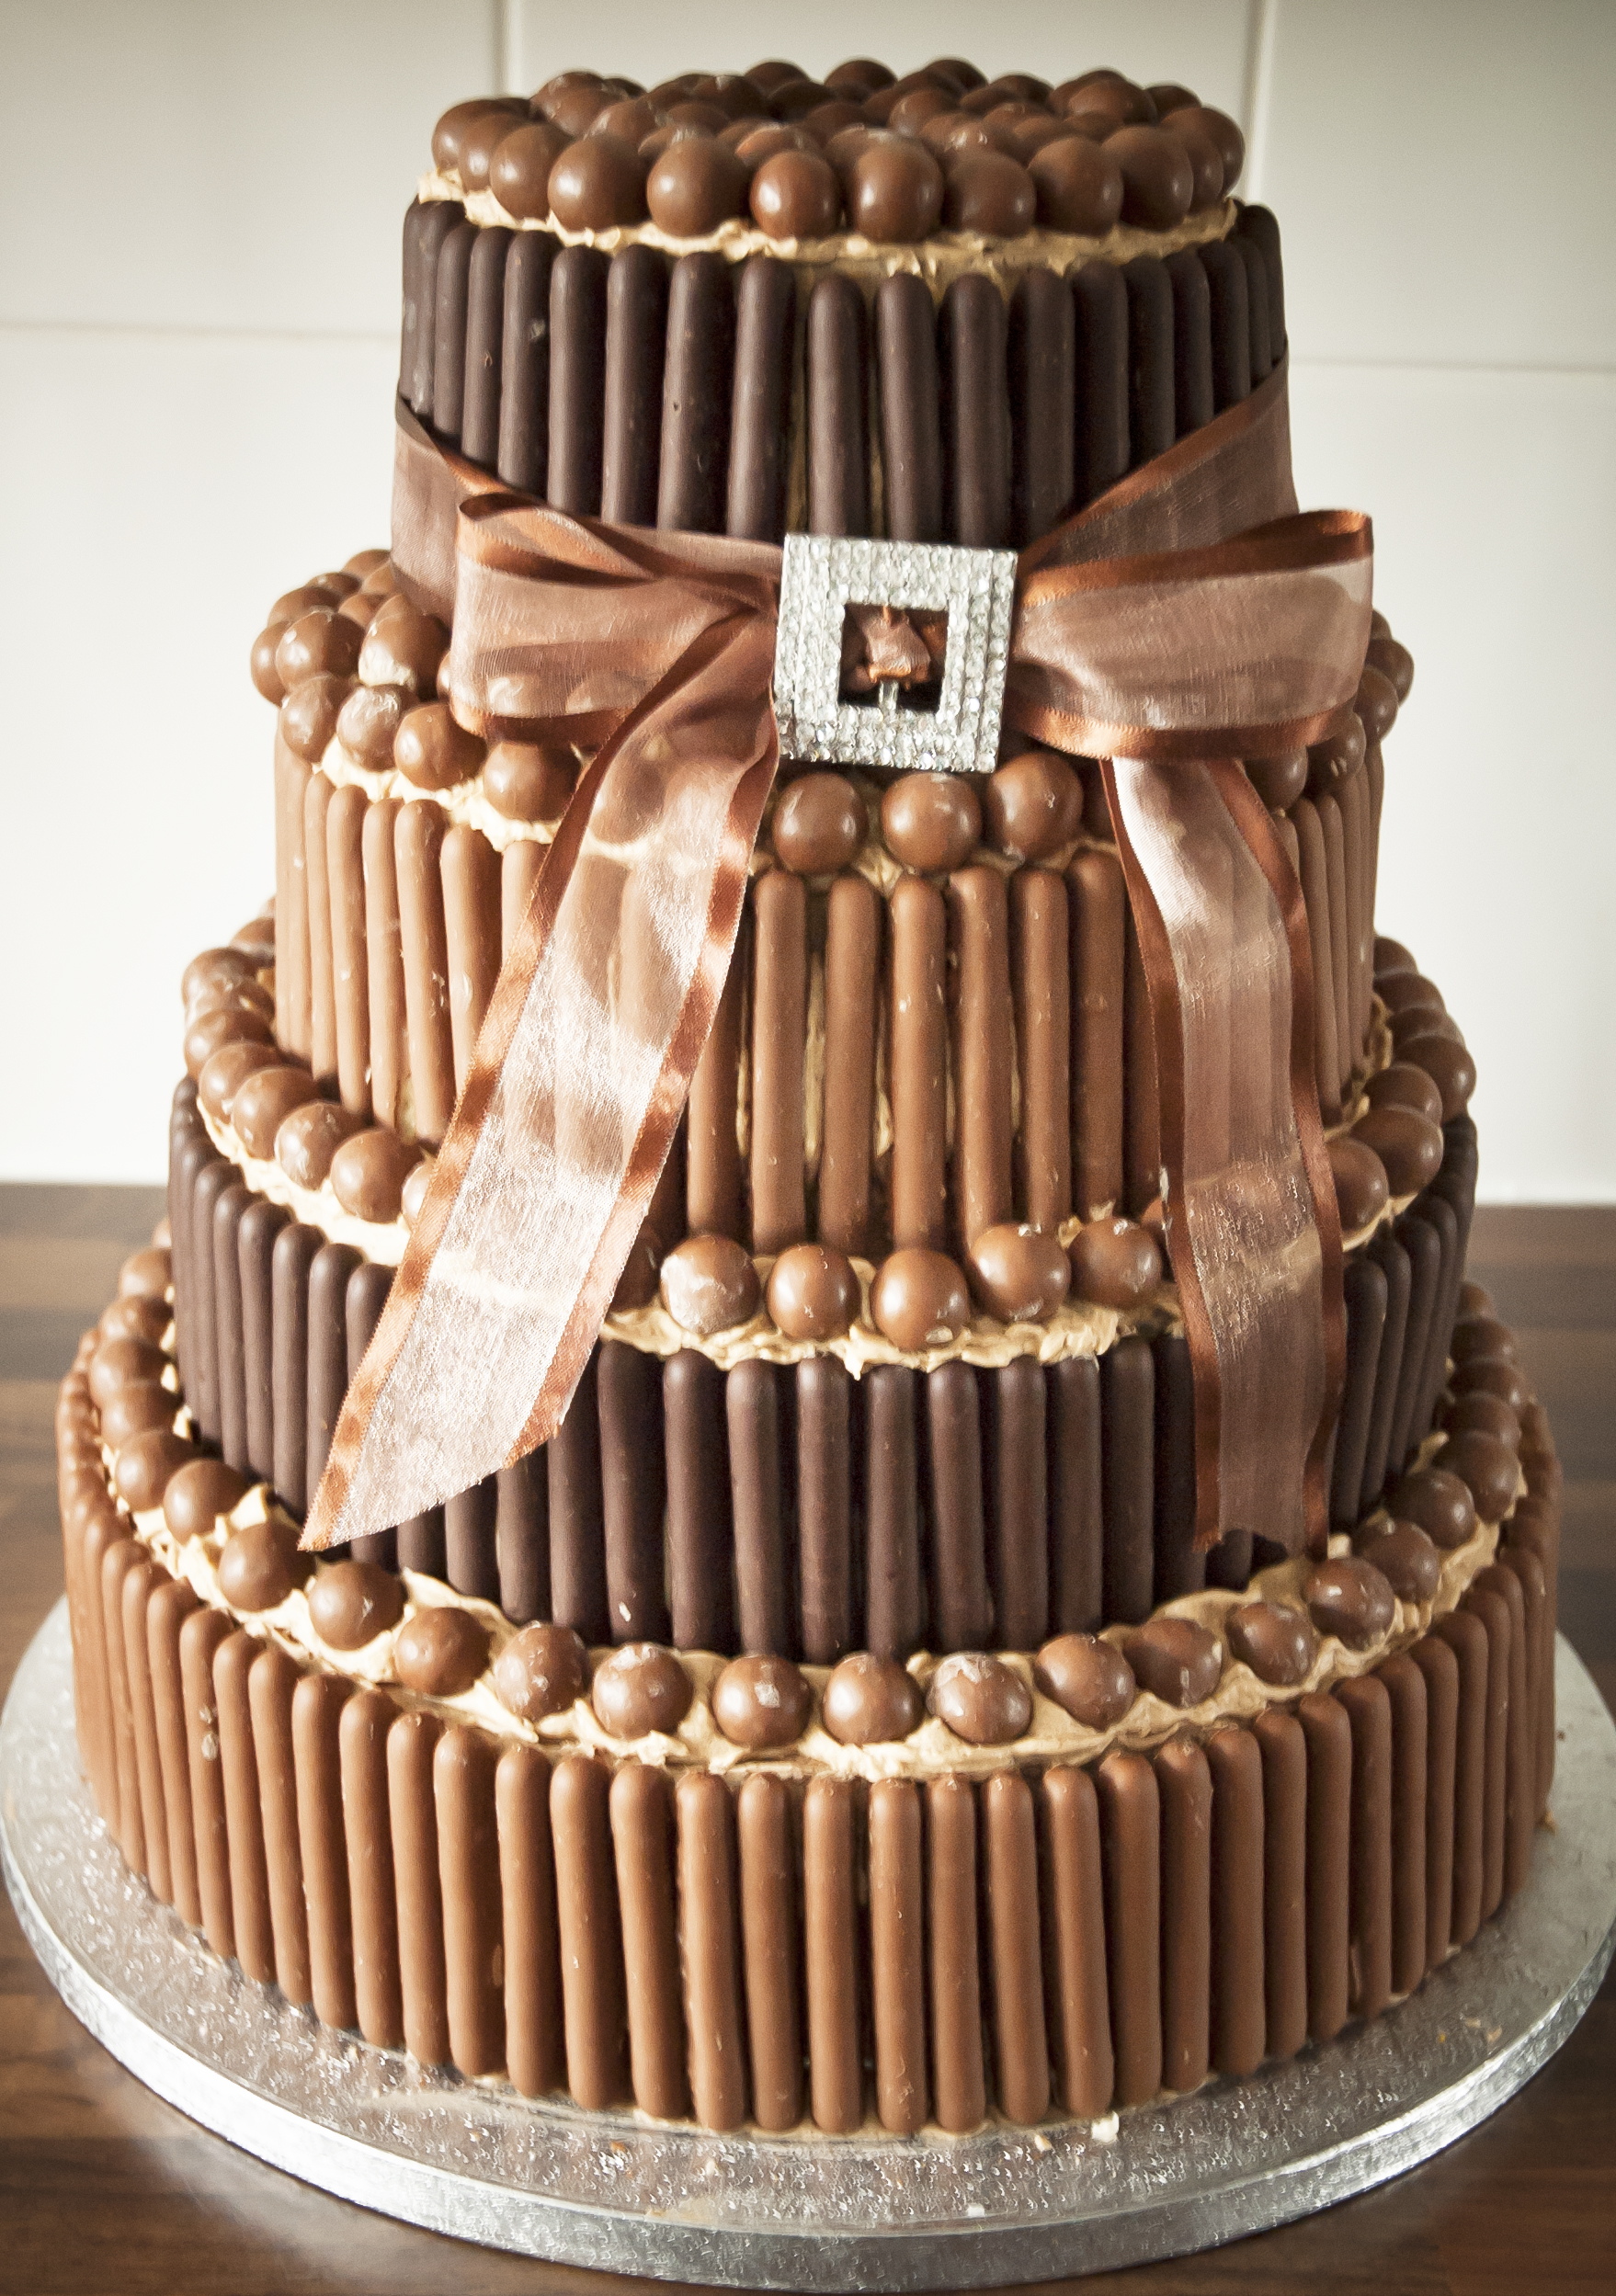 Joconde Cake With Chocolate Design : Wedding cakes, Cake decorating courses, Sunderland Durham ...